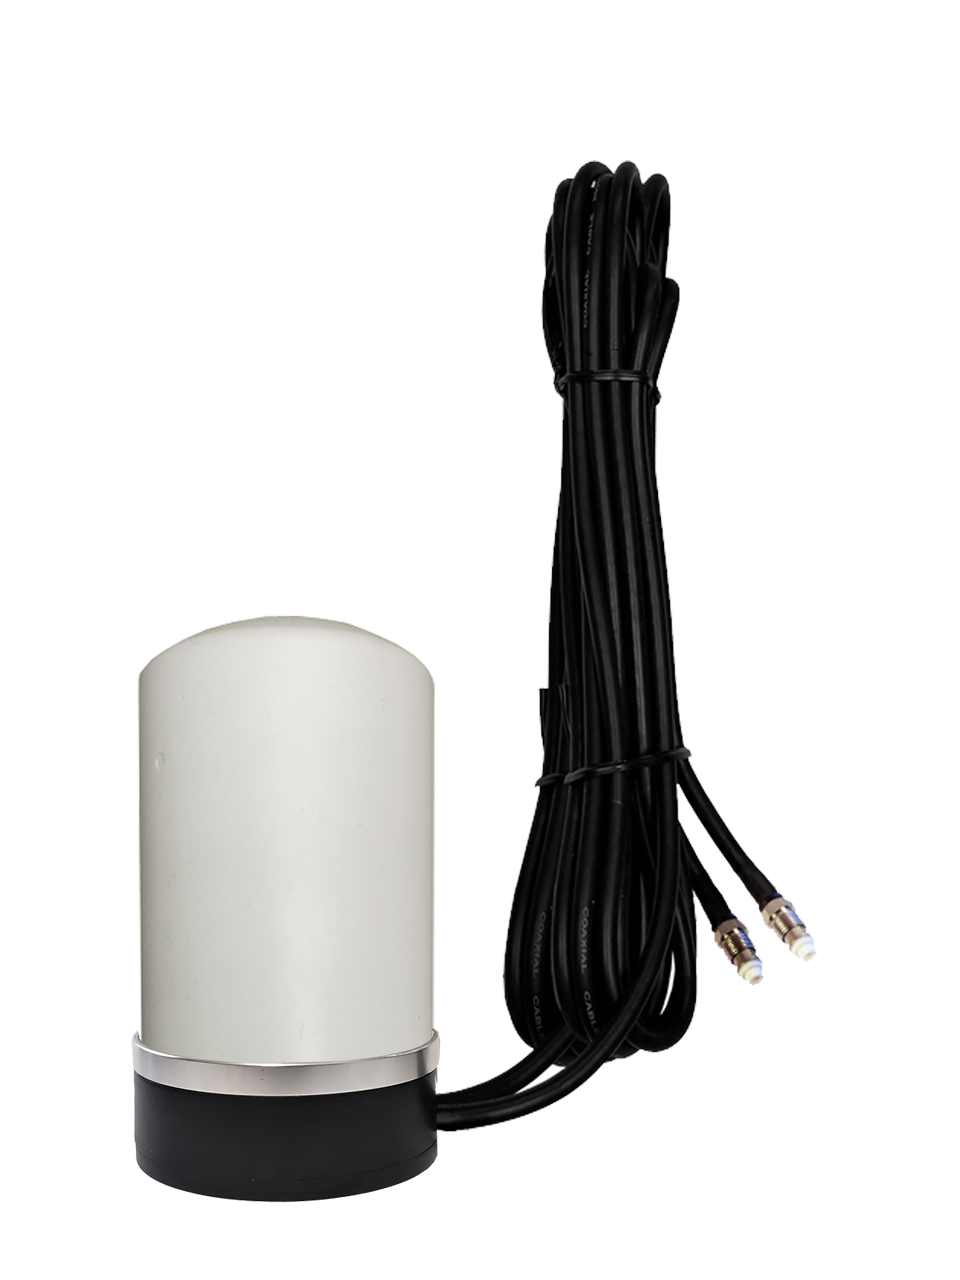 M17M Omni Directional MIMO 2 x Cellular 4G LTE CBRS 5G NR IoT M2M Magnetic Mount Antenna w/2 x 16ft Coax Cables - FME Female